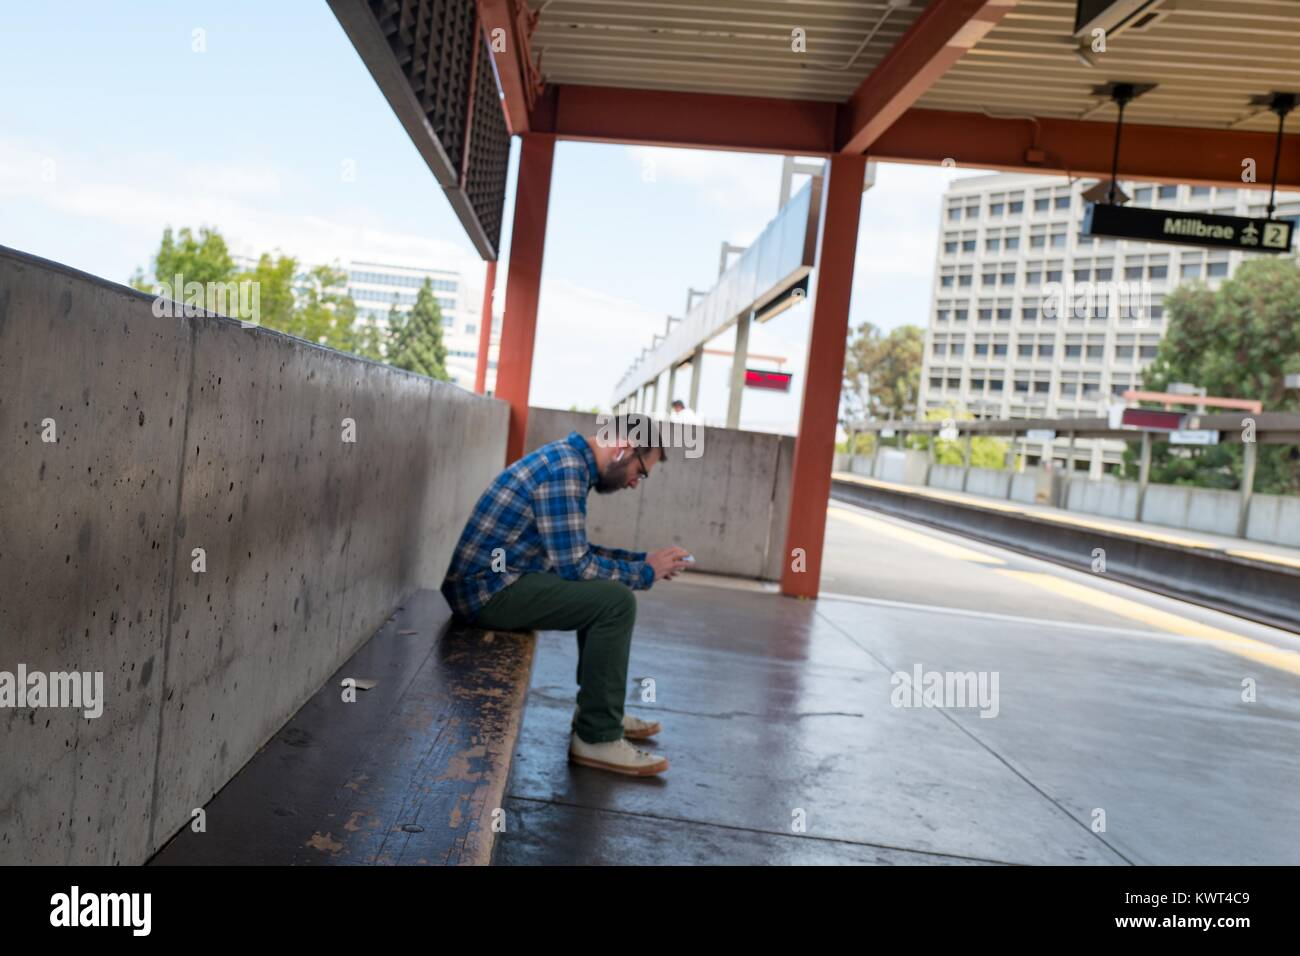 A man wearing a flannel shirt sits alone on the platform of the Walnut Creek, California station of the Bay Area - Stock Image